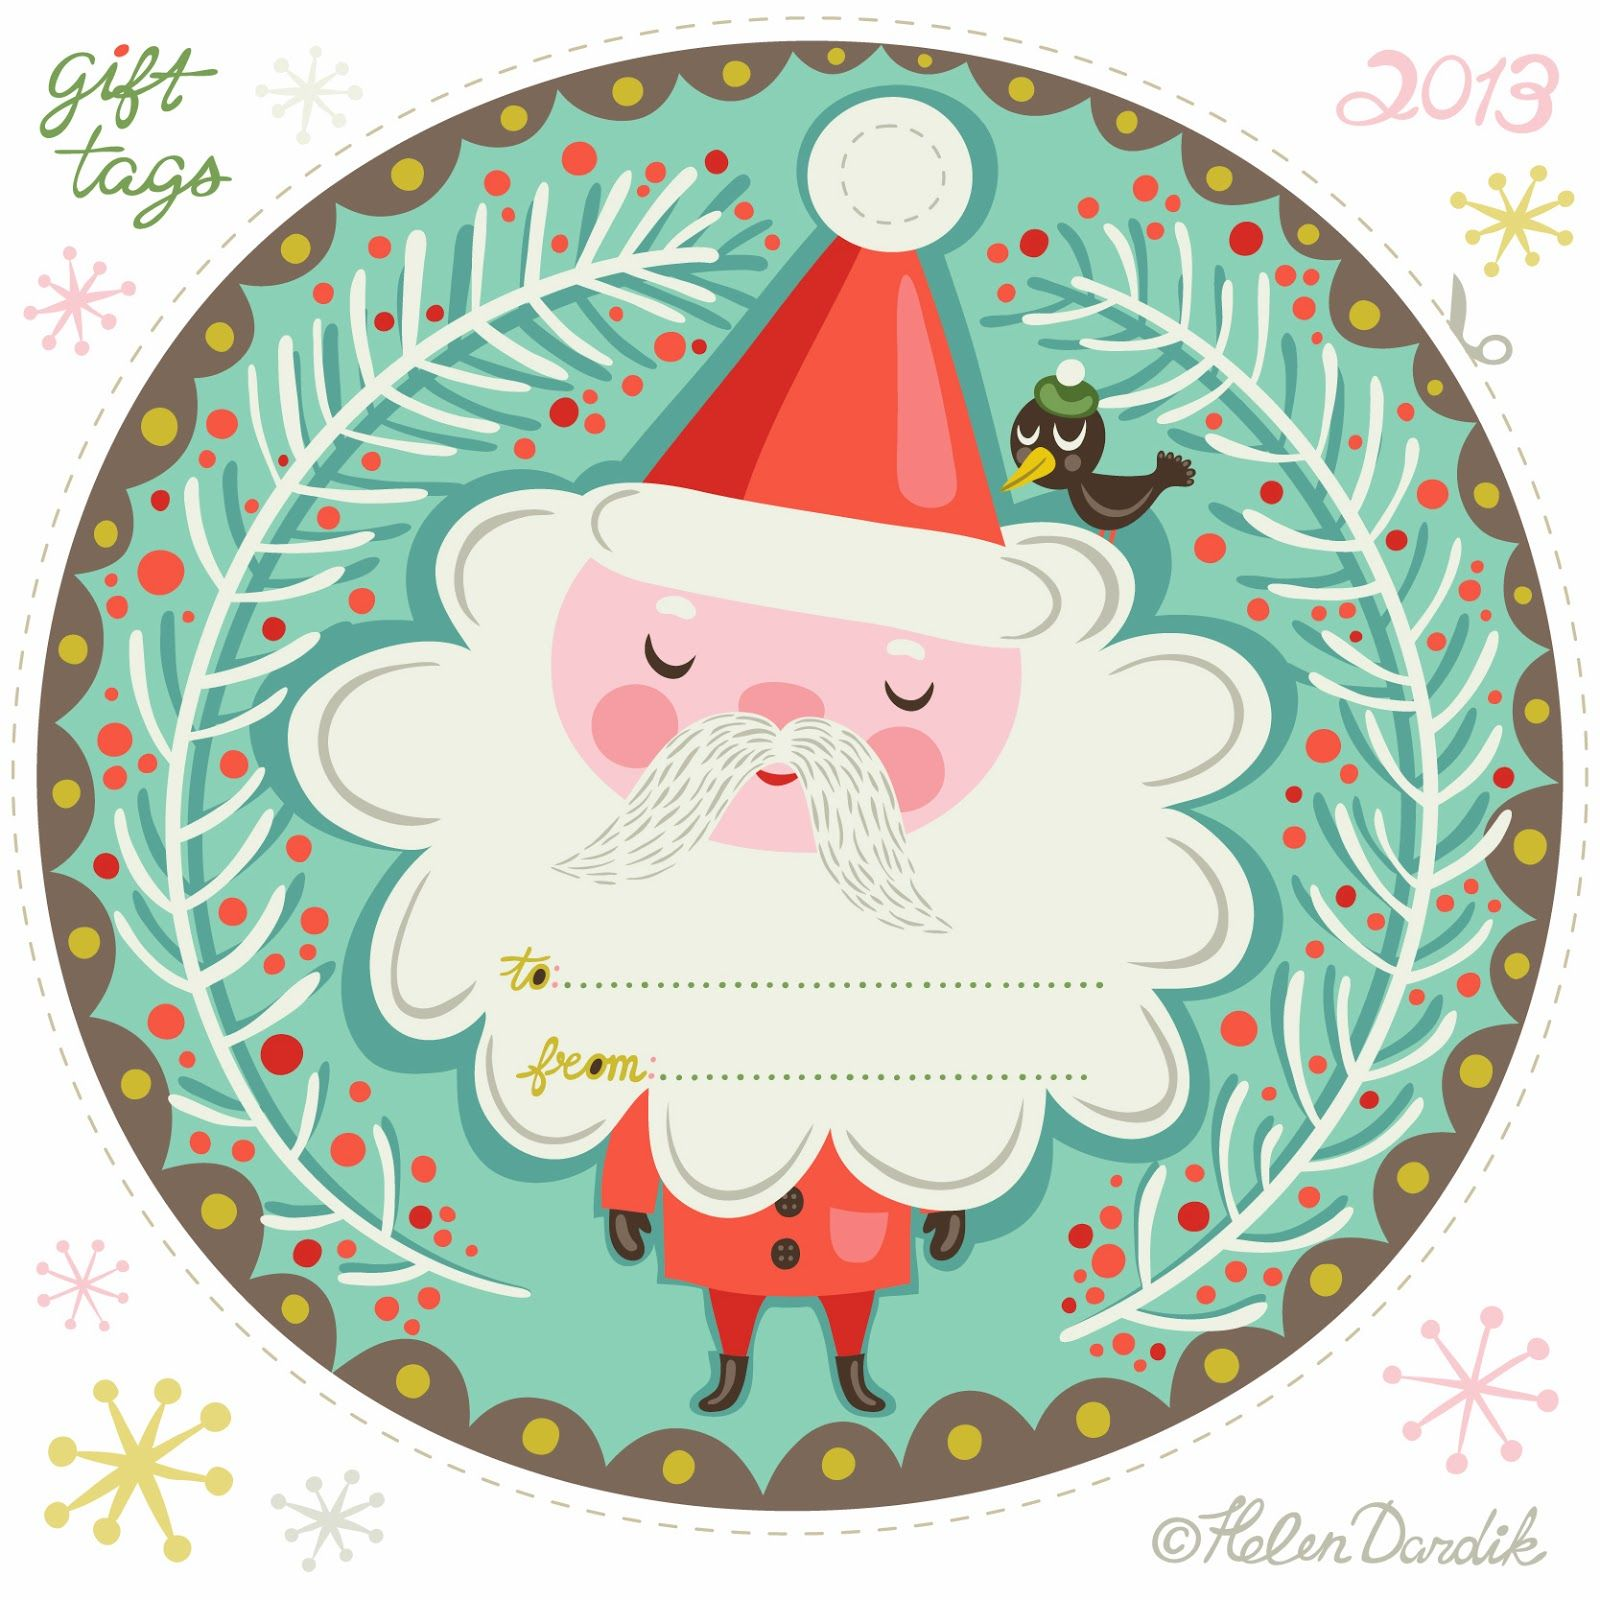 Orange you lucky ktyaaa pinterest free printables dardik helen gifttags 2013 1 free holiday printable round up christmas tags posters and negle Image collections